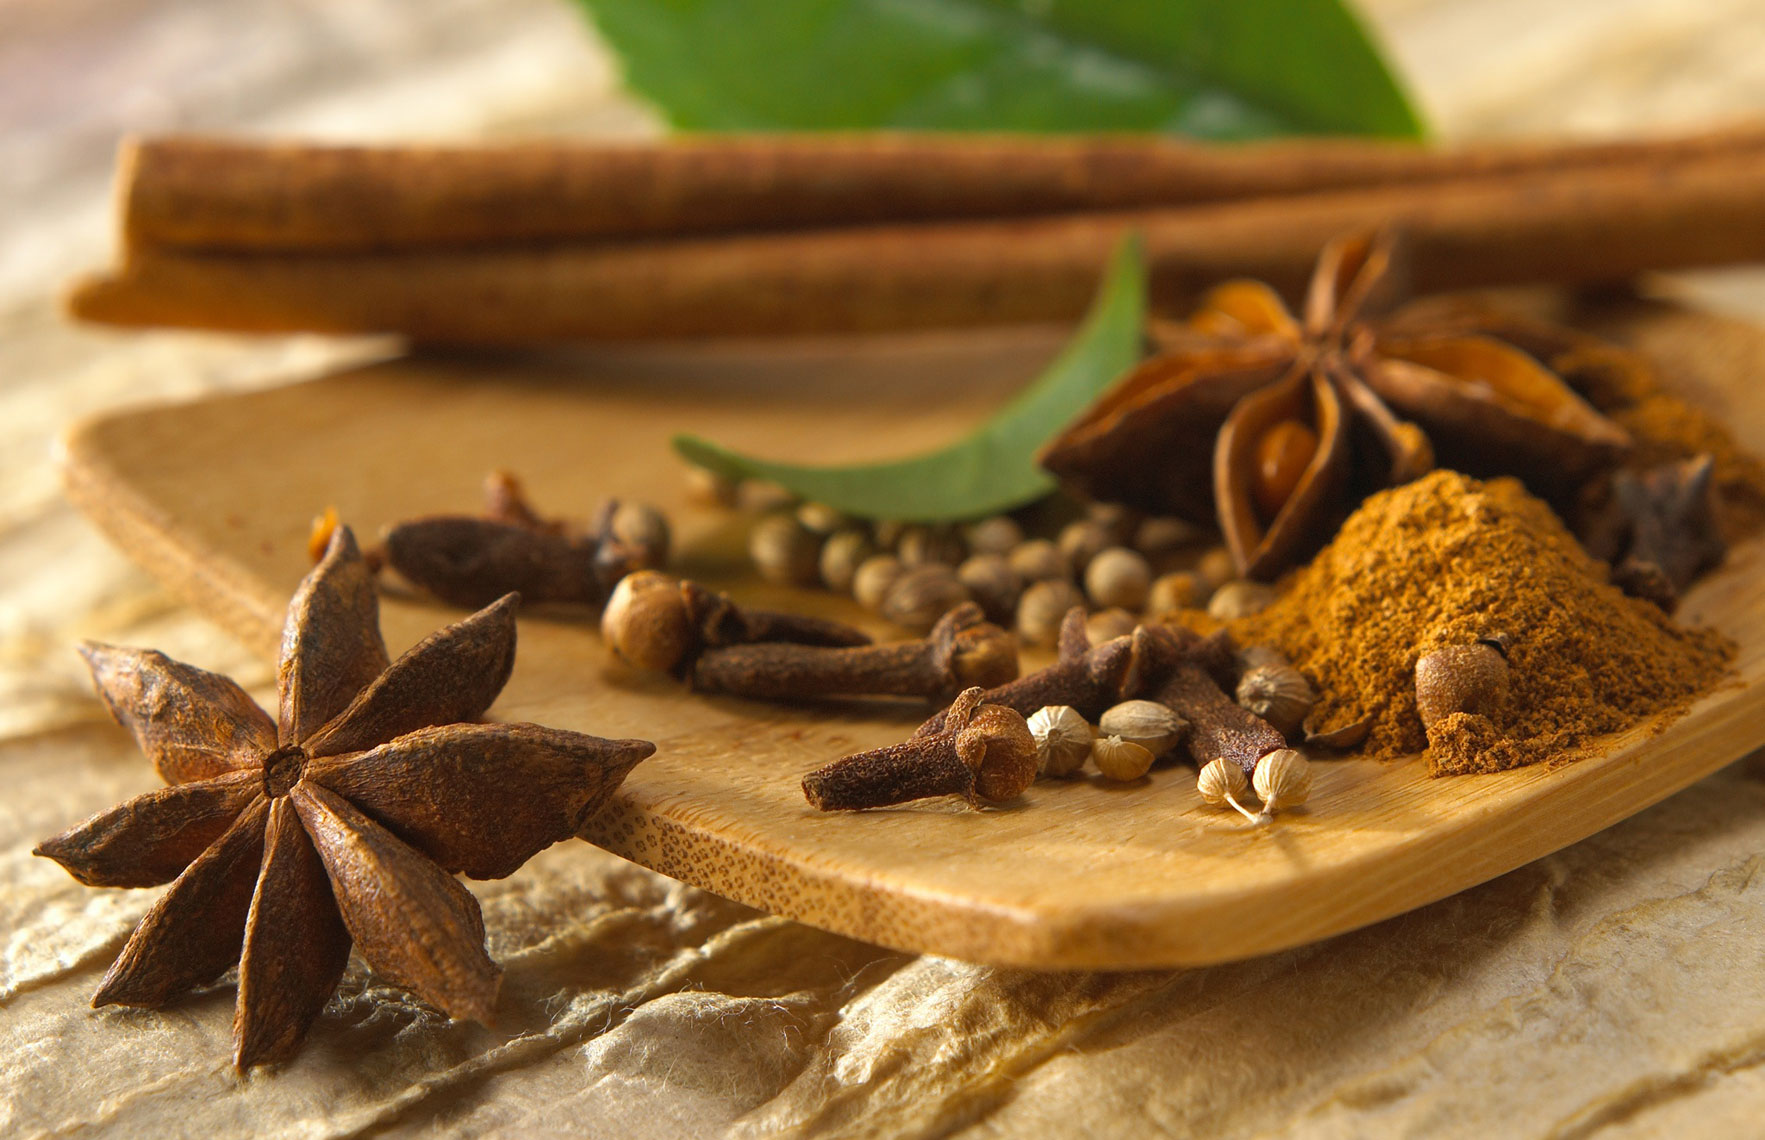 Star anise/cloves/cinnamon/coriander/wooden dish/food photography